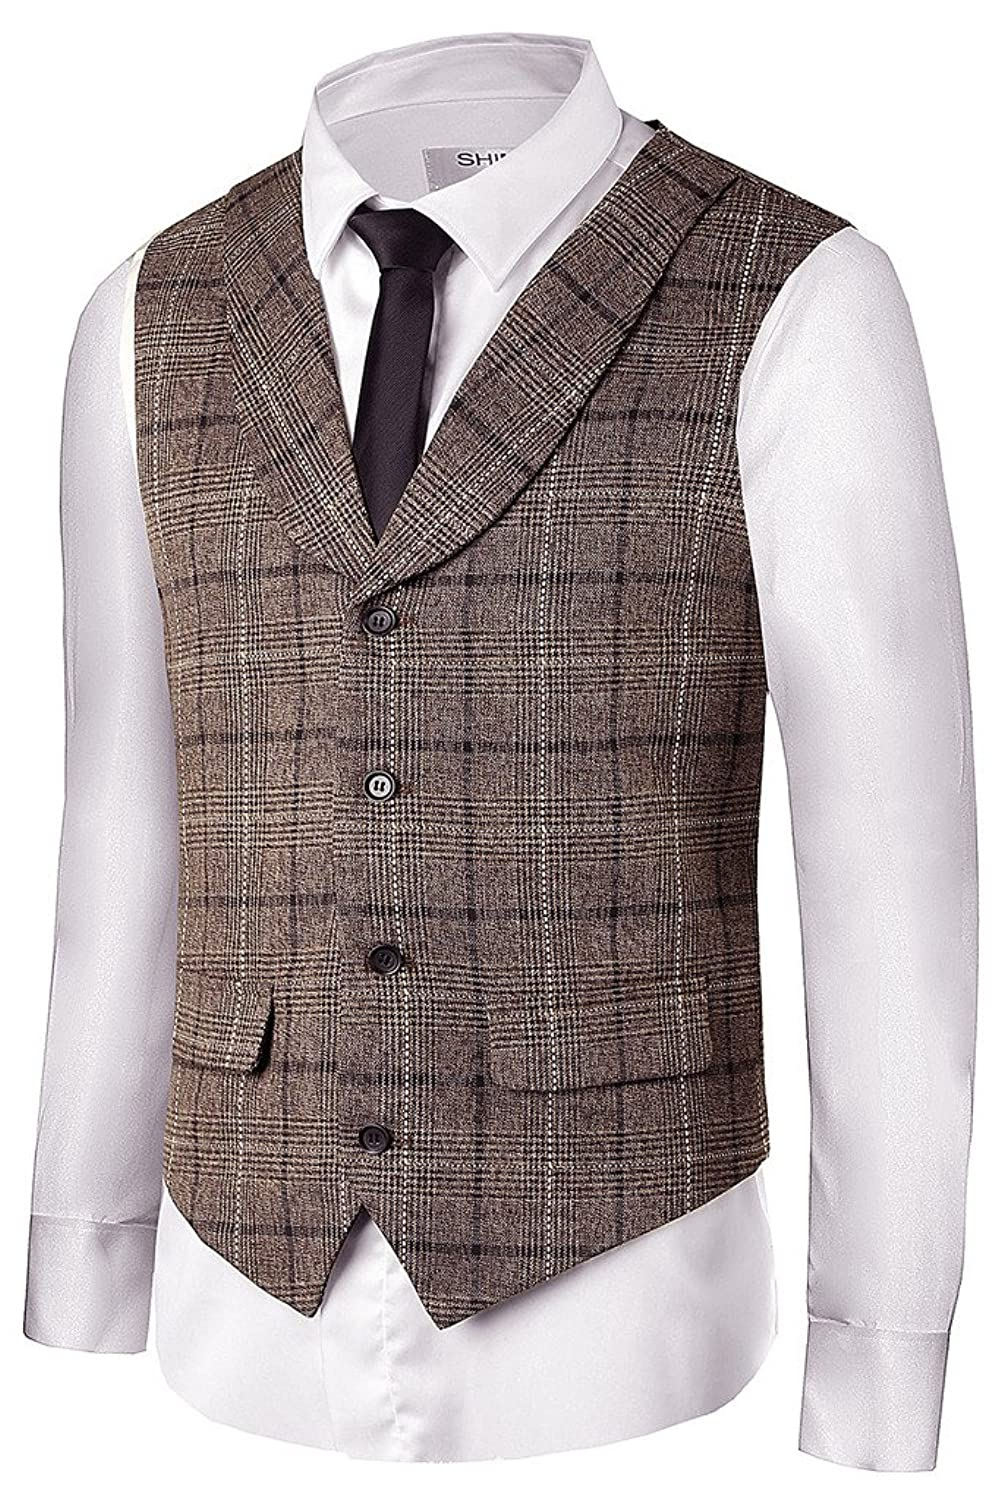 1930s Men's Costumes: Gangster, Clyde Barrow, Mummy, Dracula, Frankenstein Hanayome Mens Gentleman Top Design Casual Waistcoat Business Suit Vest VS17 $28.50 AT vintagedancer.com